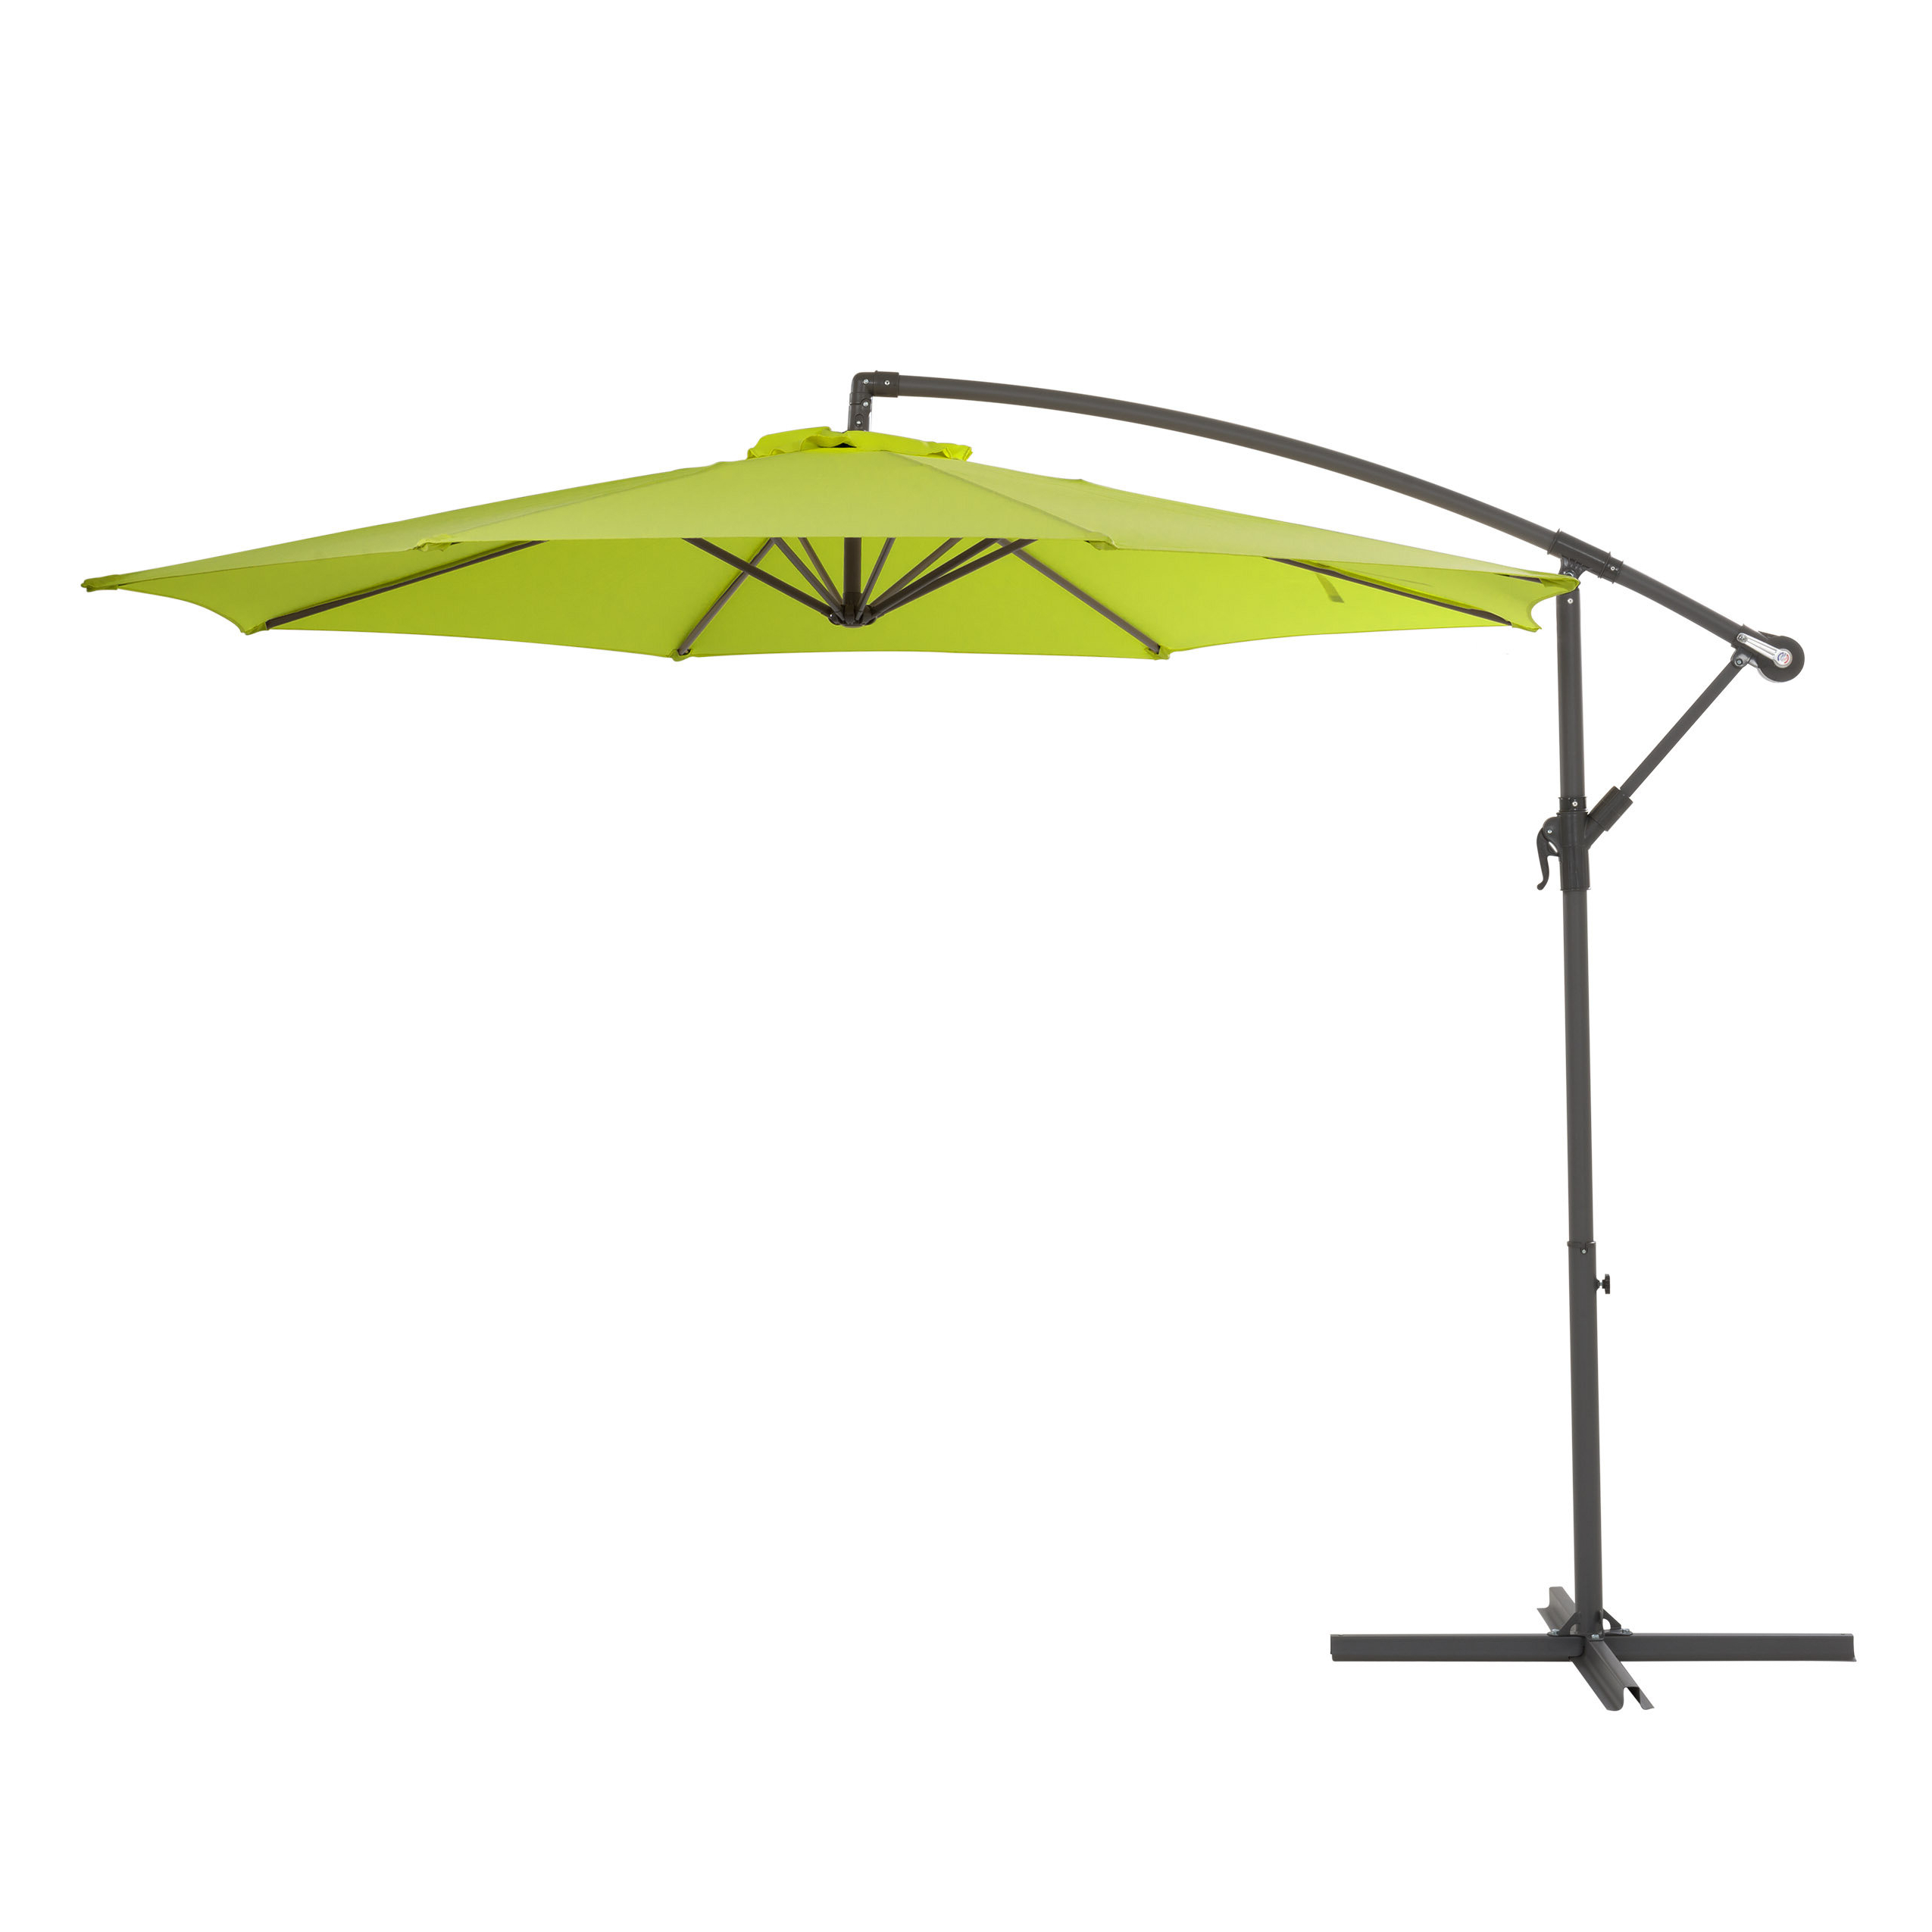 Muhammad Fullerton Cantilever Umbrellas For Most Up To Date Freda (View 6 of 20)